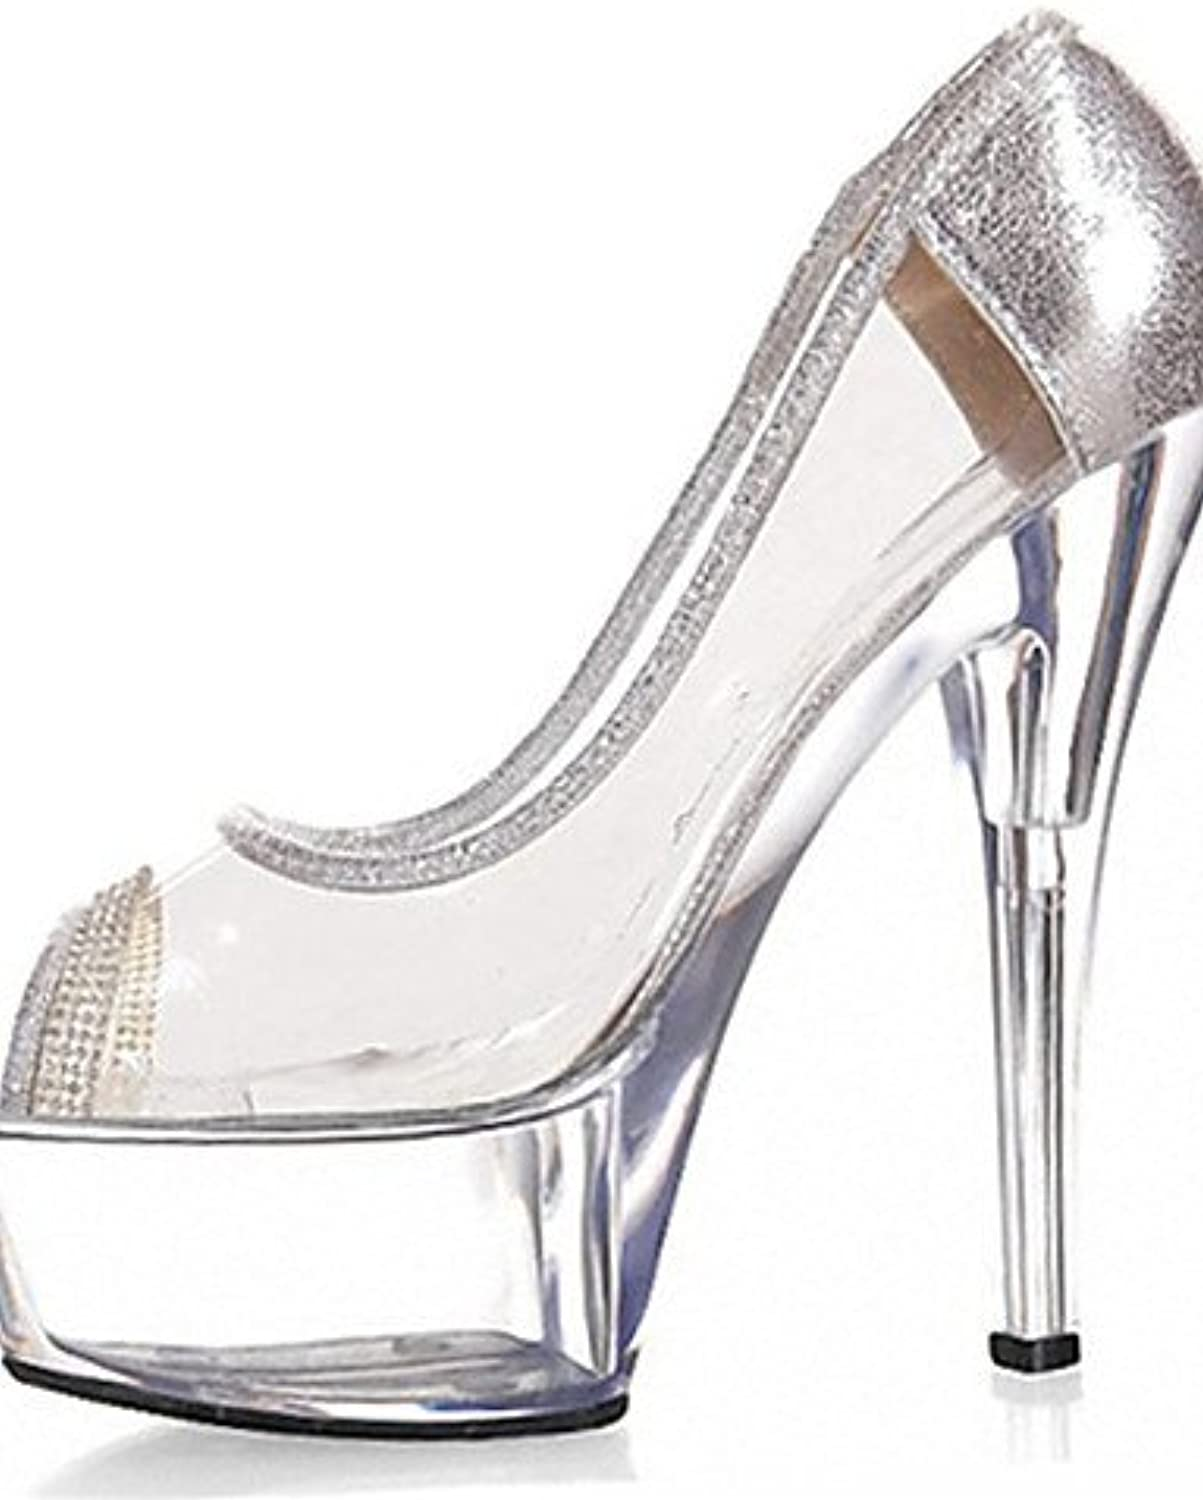 GGX/New 15 cm Crystal Auto Diamant Glitzer High Heels Damen Schuhe PVC/Heels/Peep Toe Heels Hochzeit/Outdoor/Party